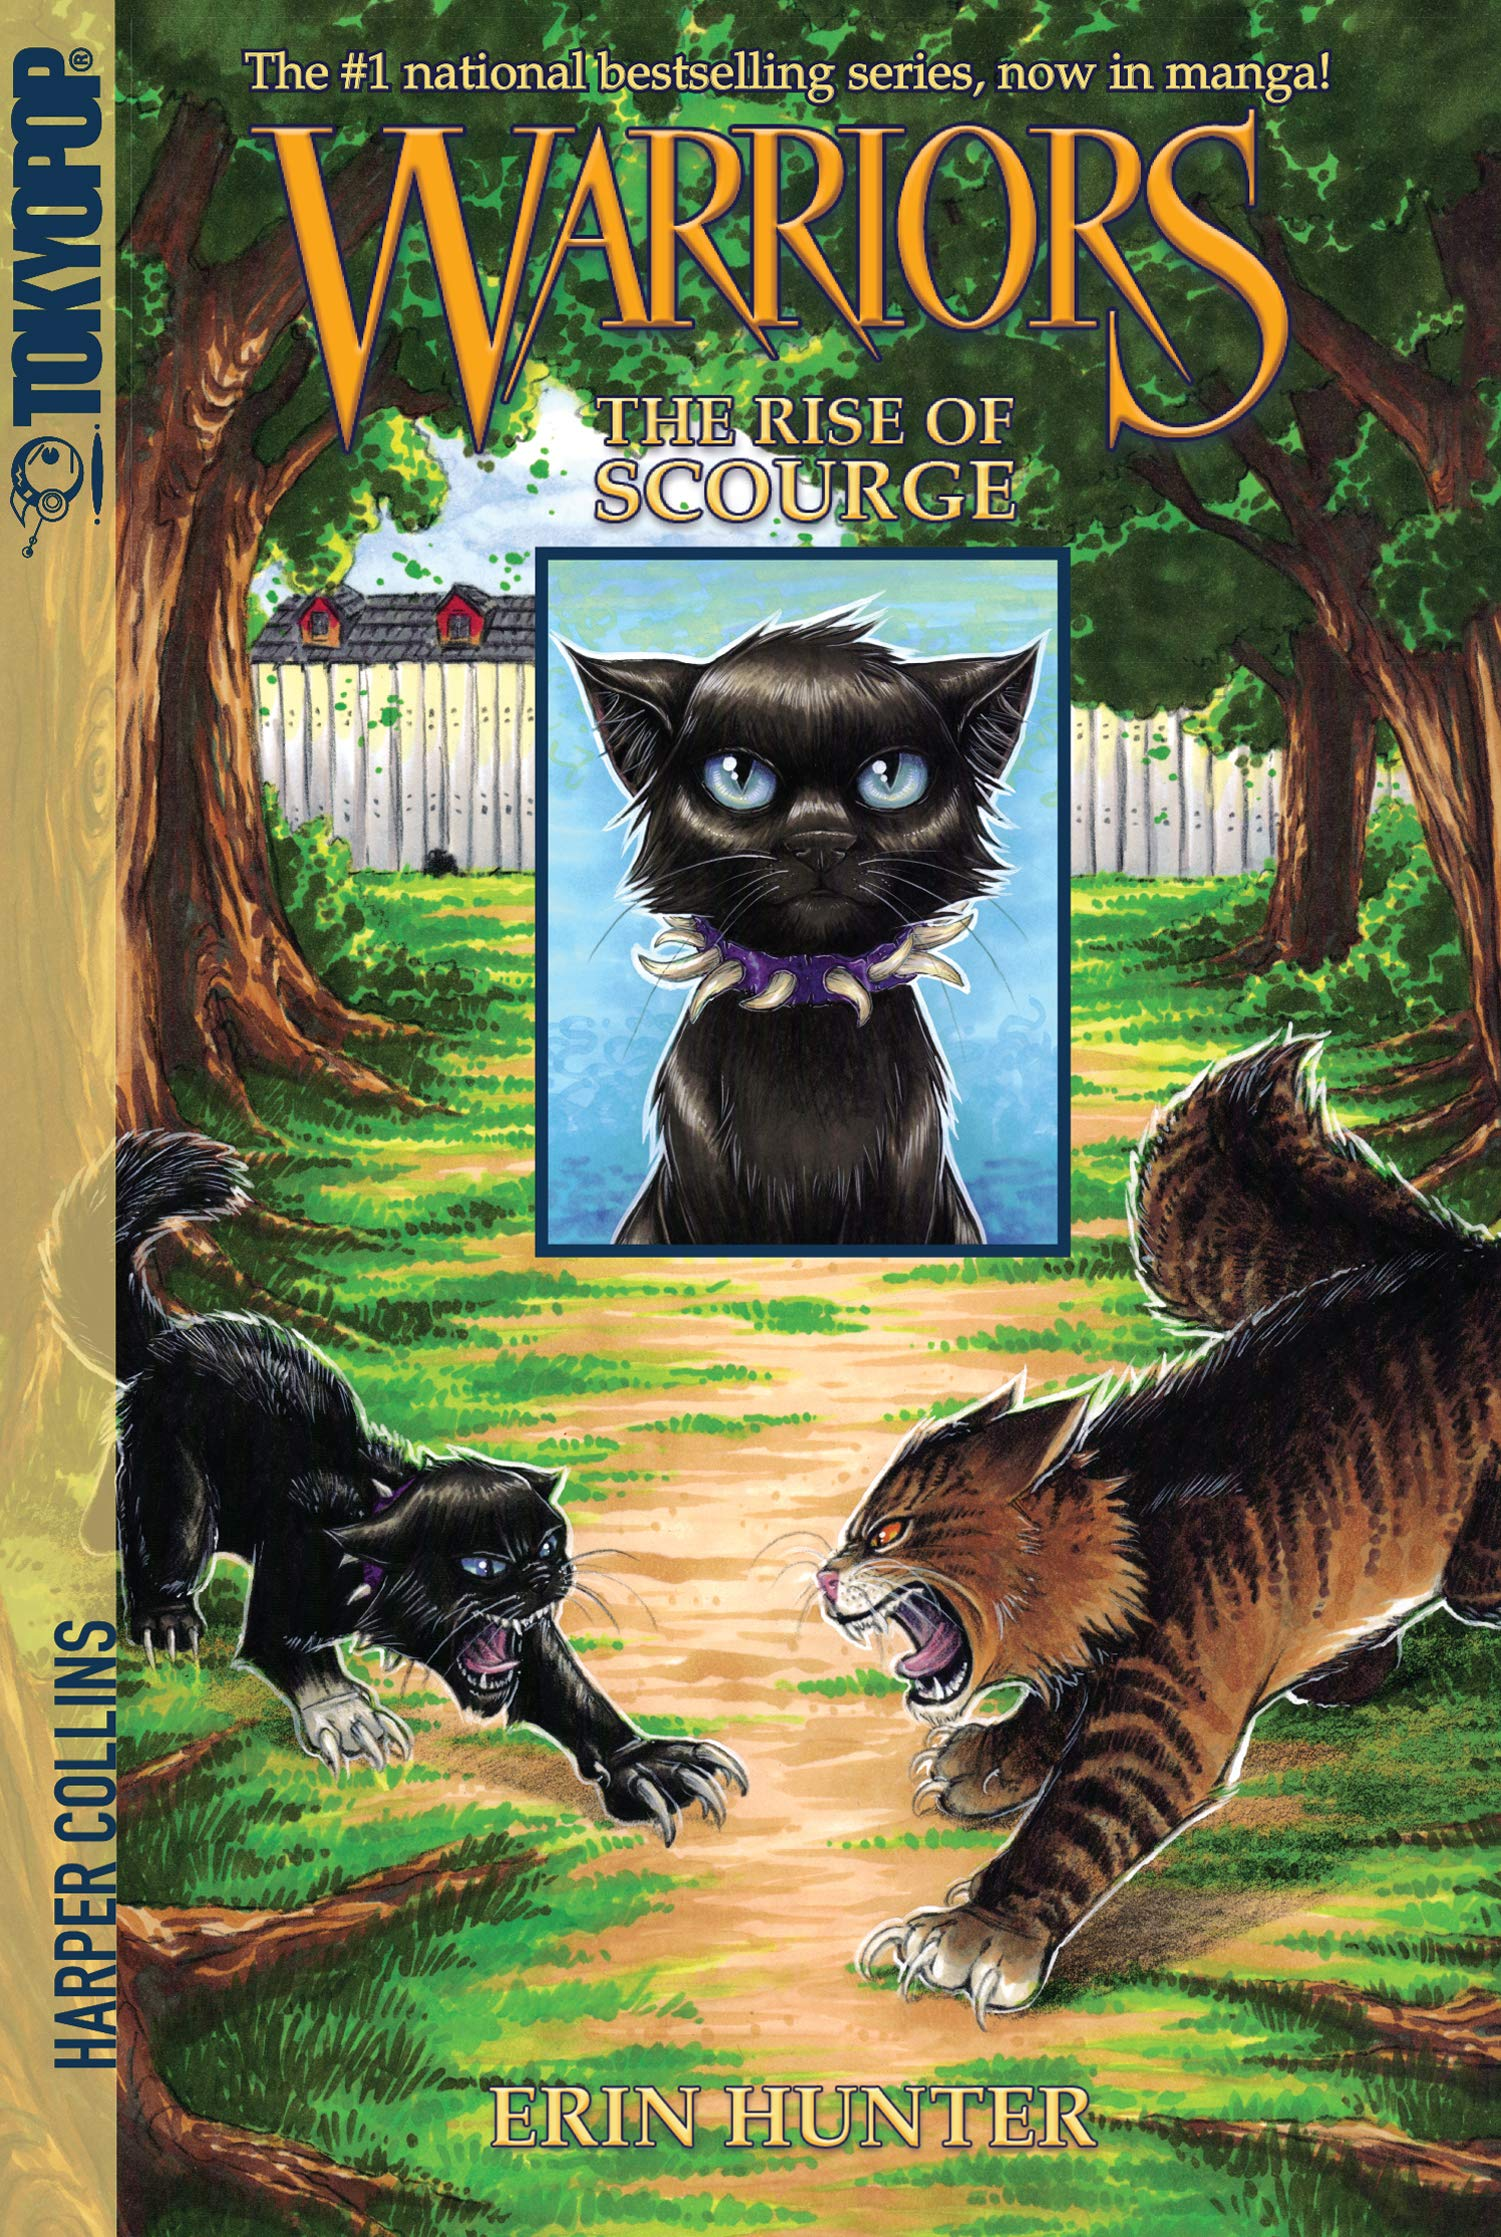 Warriors: The Rise of Scourge: Erin Hunter, Dan Jolley